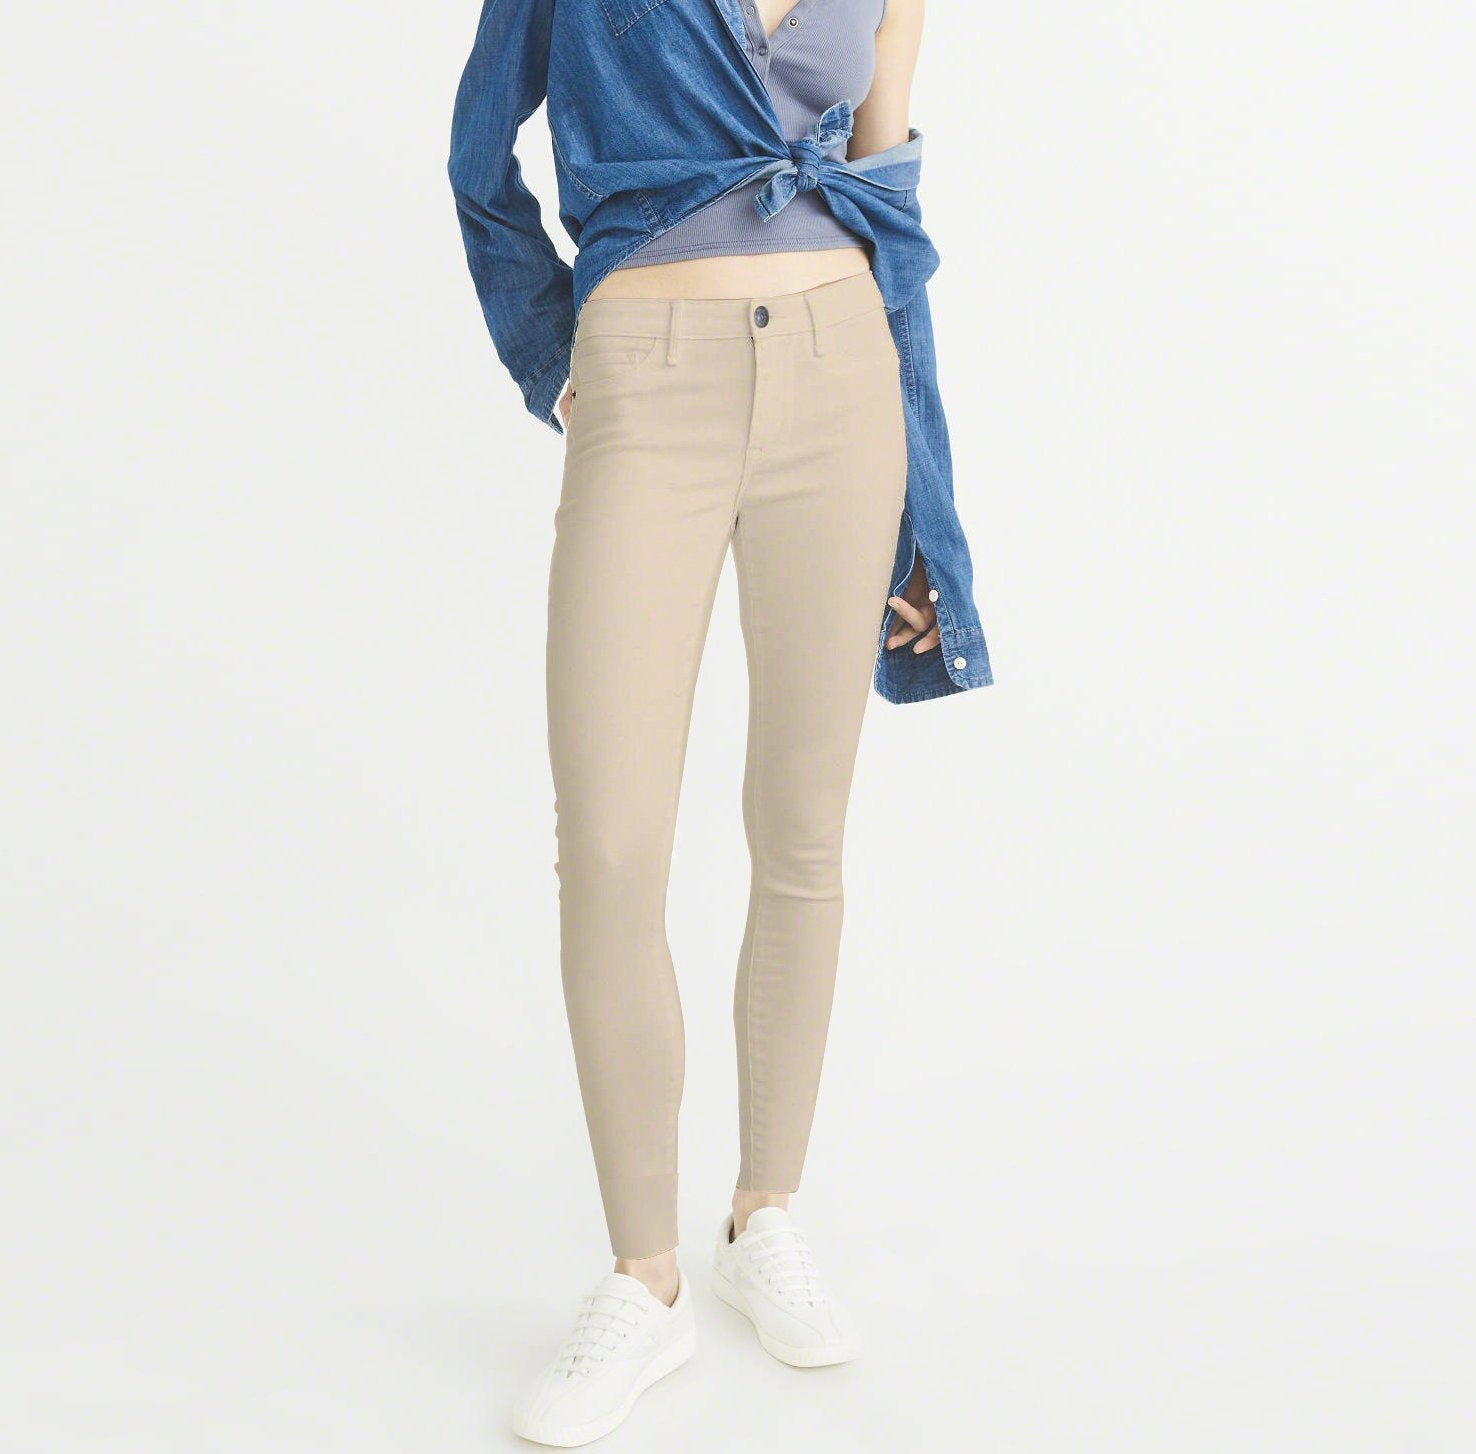 brandsego - OLD NAVY Stretch Skinny Fit Denim For Ladies-Light Wheat-NA7956